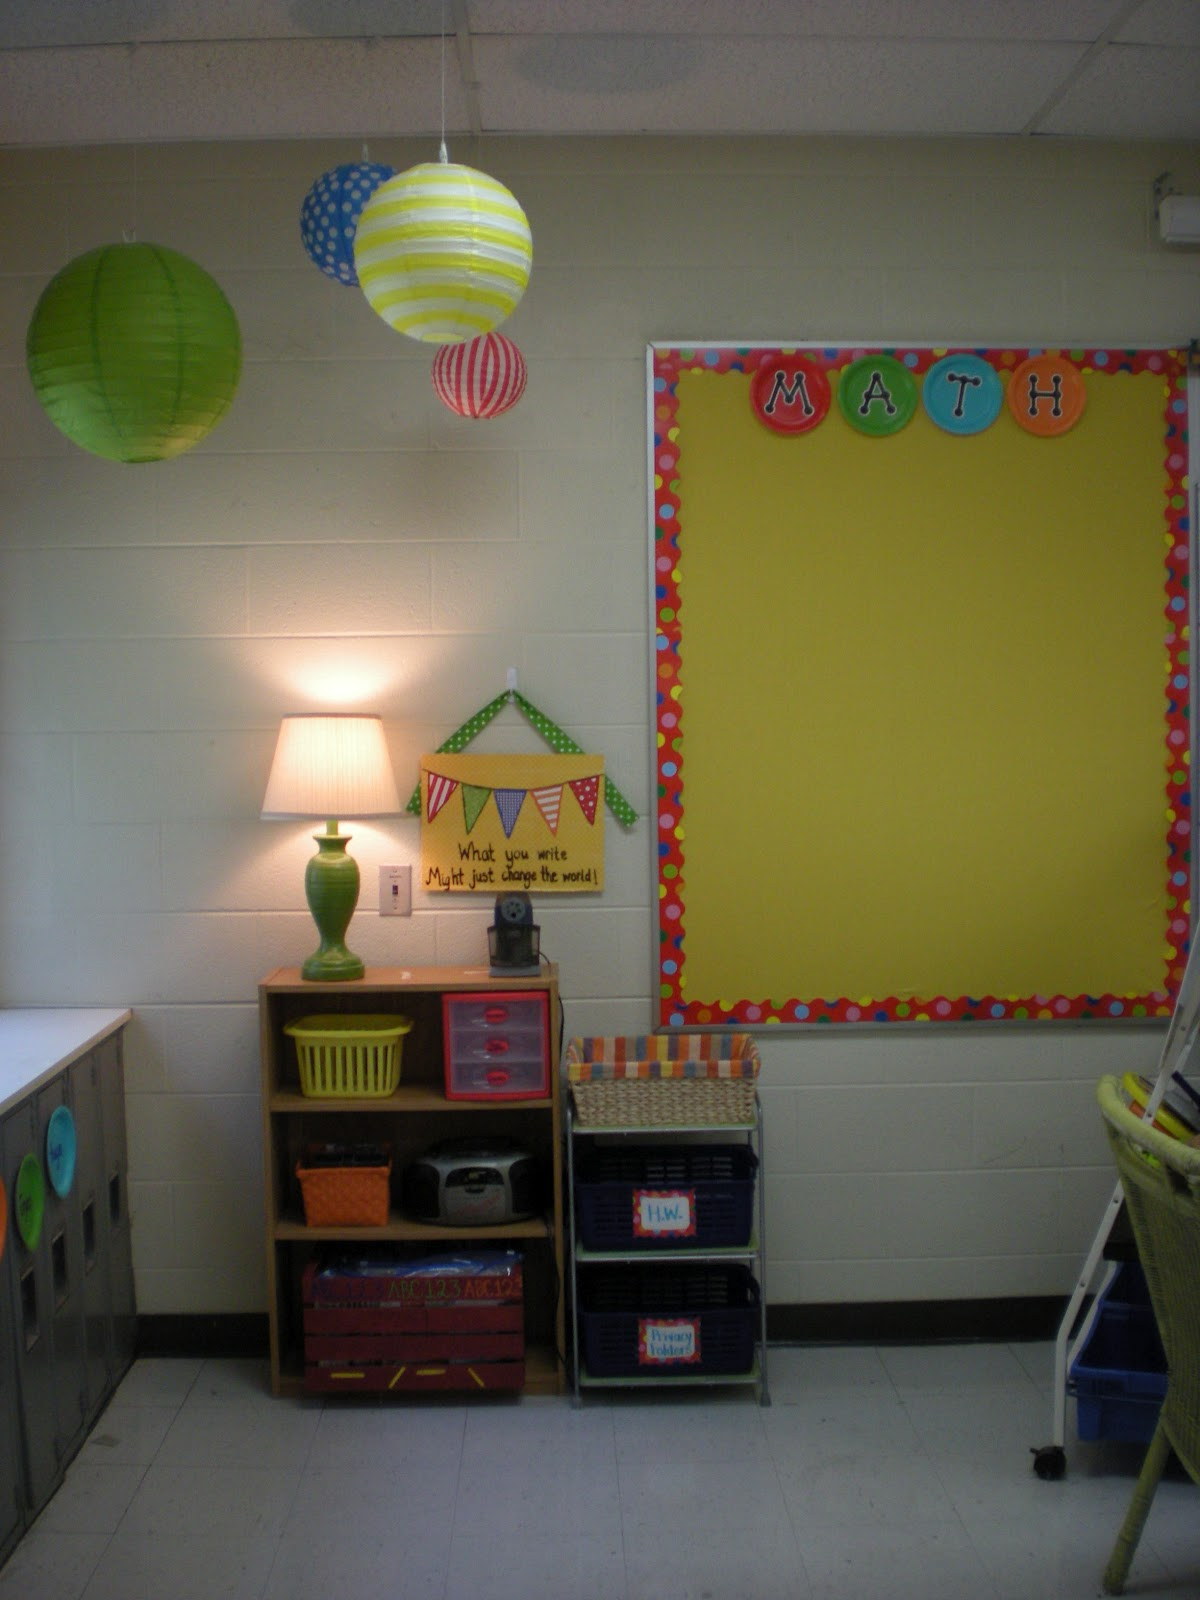 The Good Life: My New Classroom!